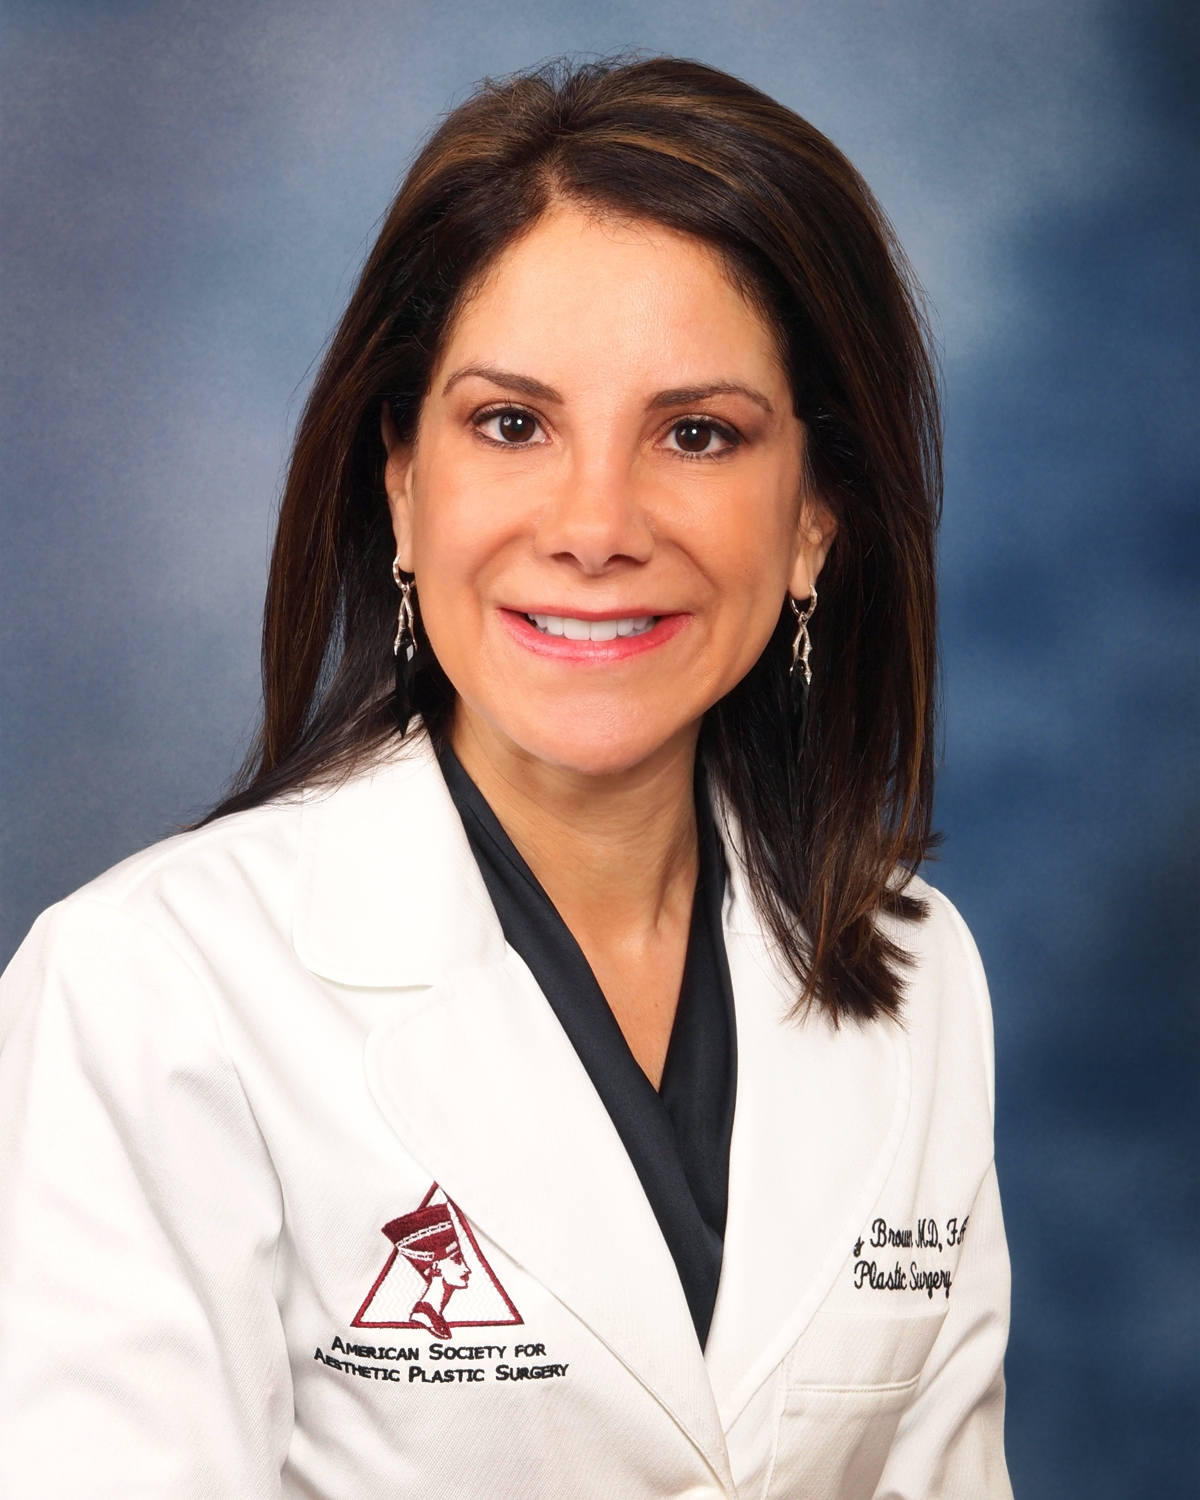 Las Vegas Cosmetic Surgeon Dr. Hayley Brown